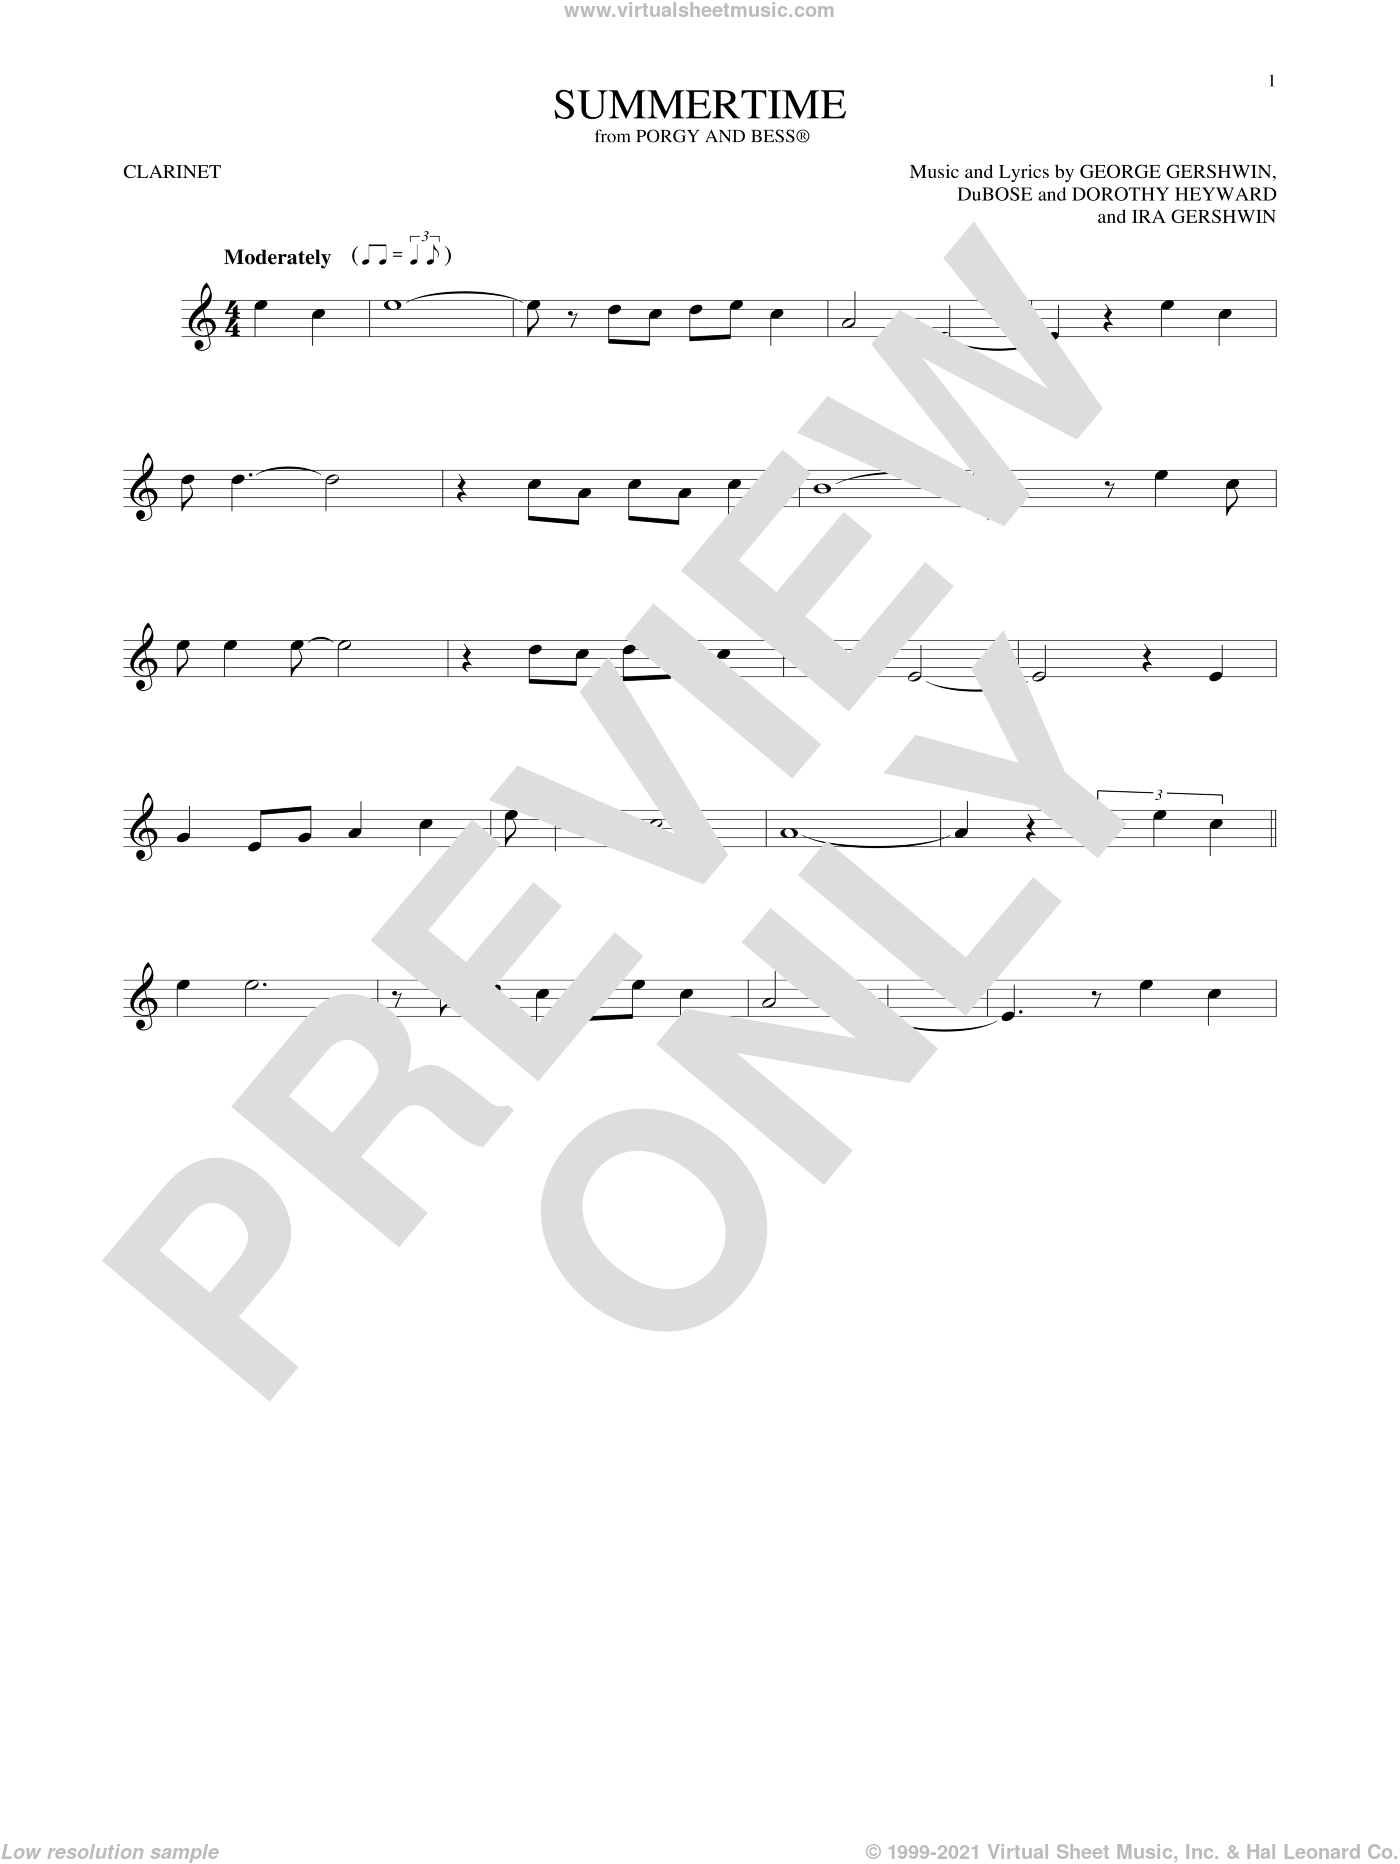 Summertime sheet music for clarinet solo by George Gershwin, Dorothy Heyward, DuBose Heyward and Ira Gershwin, intermediate skill level